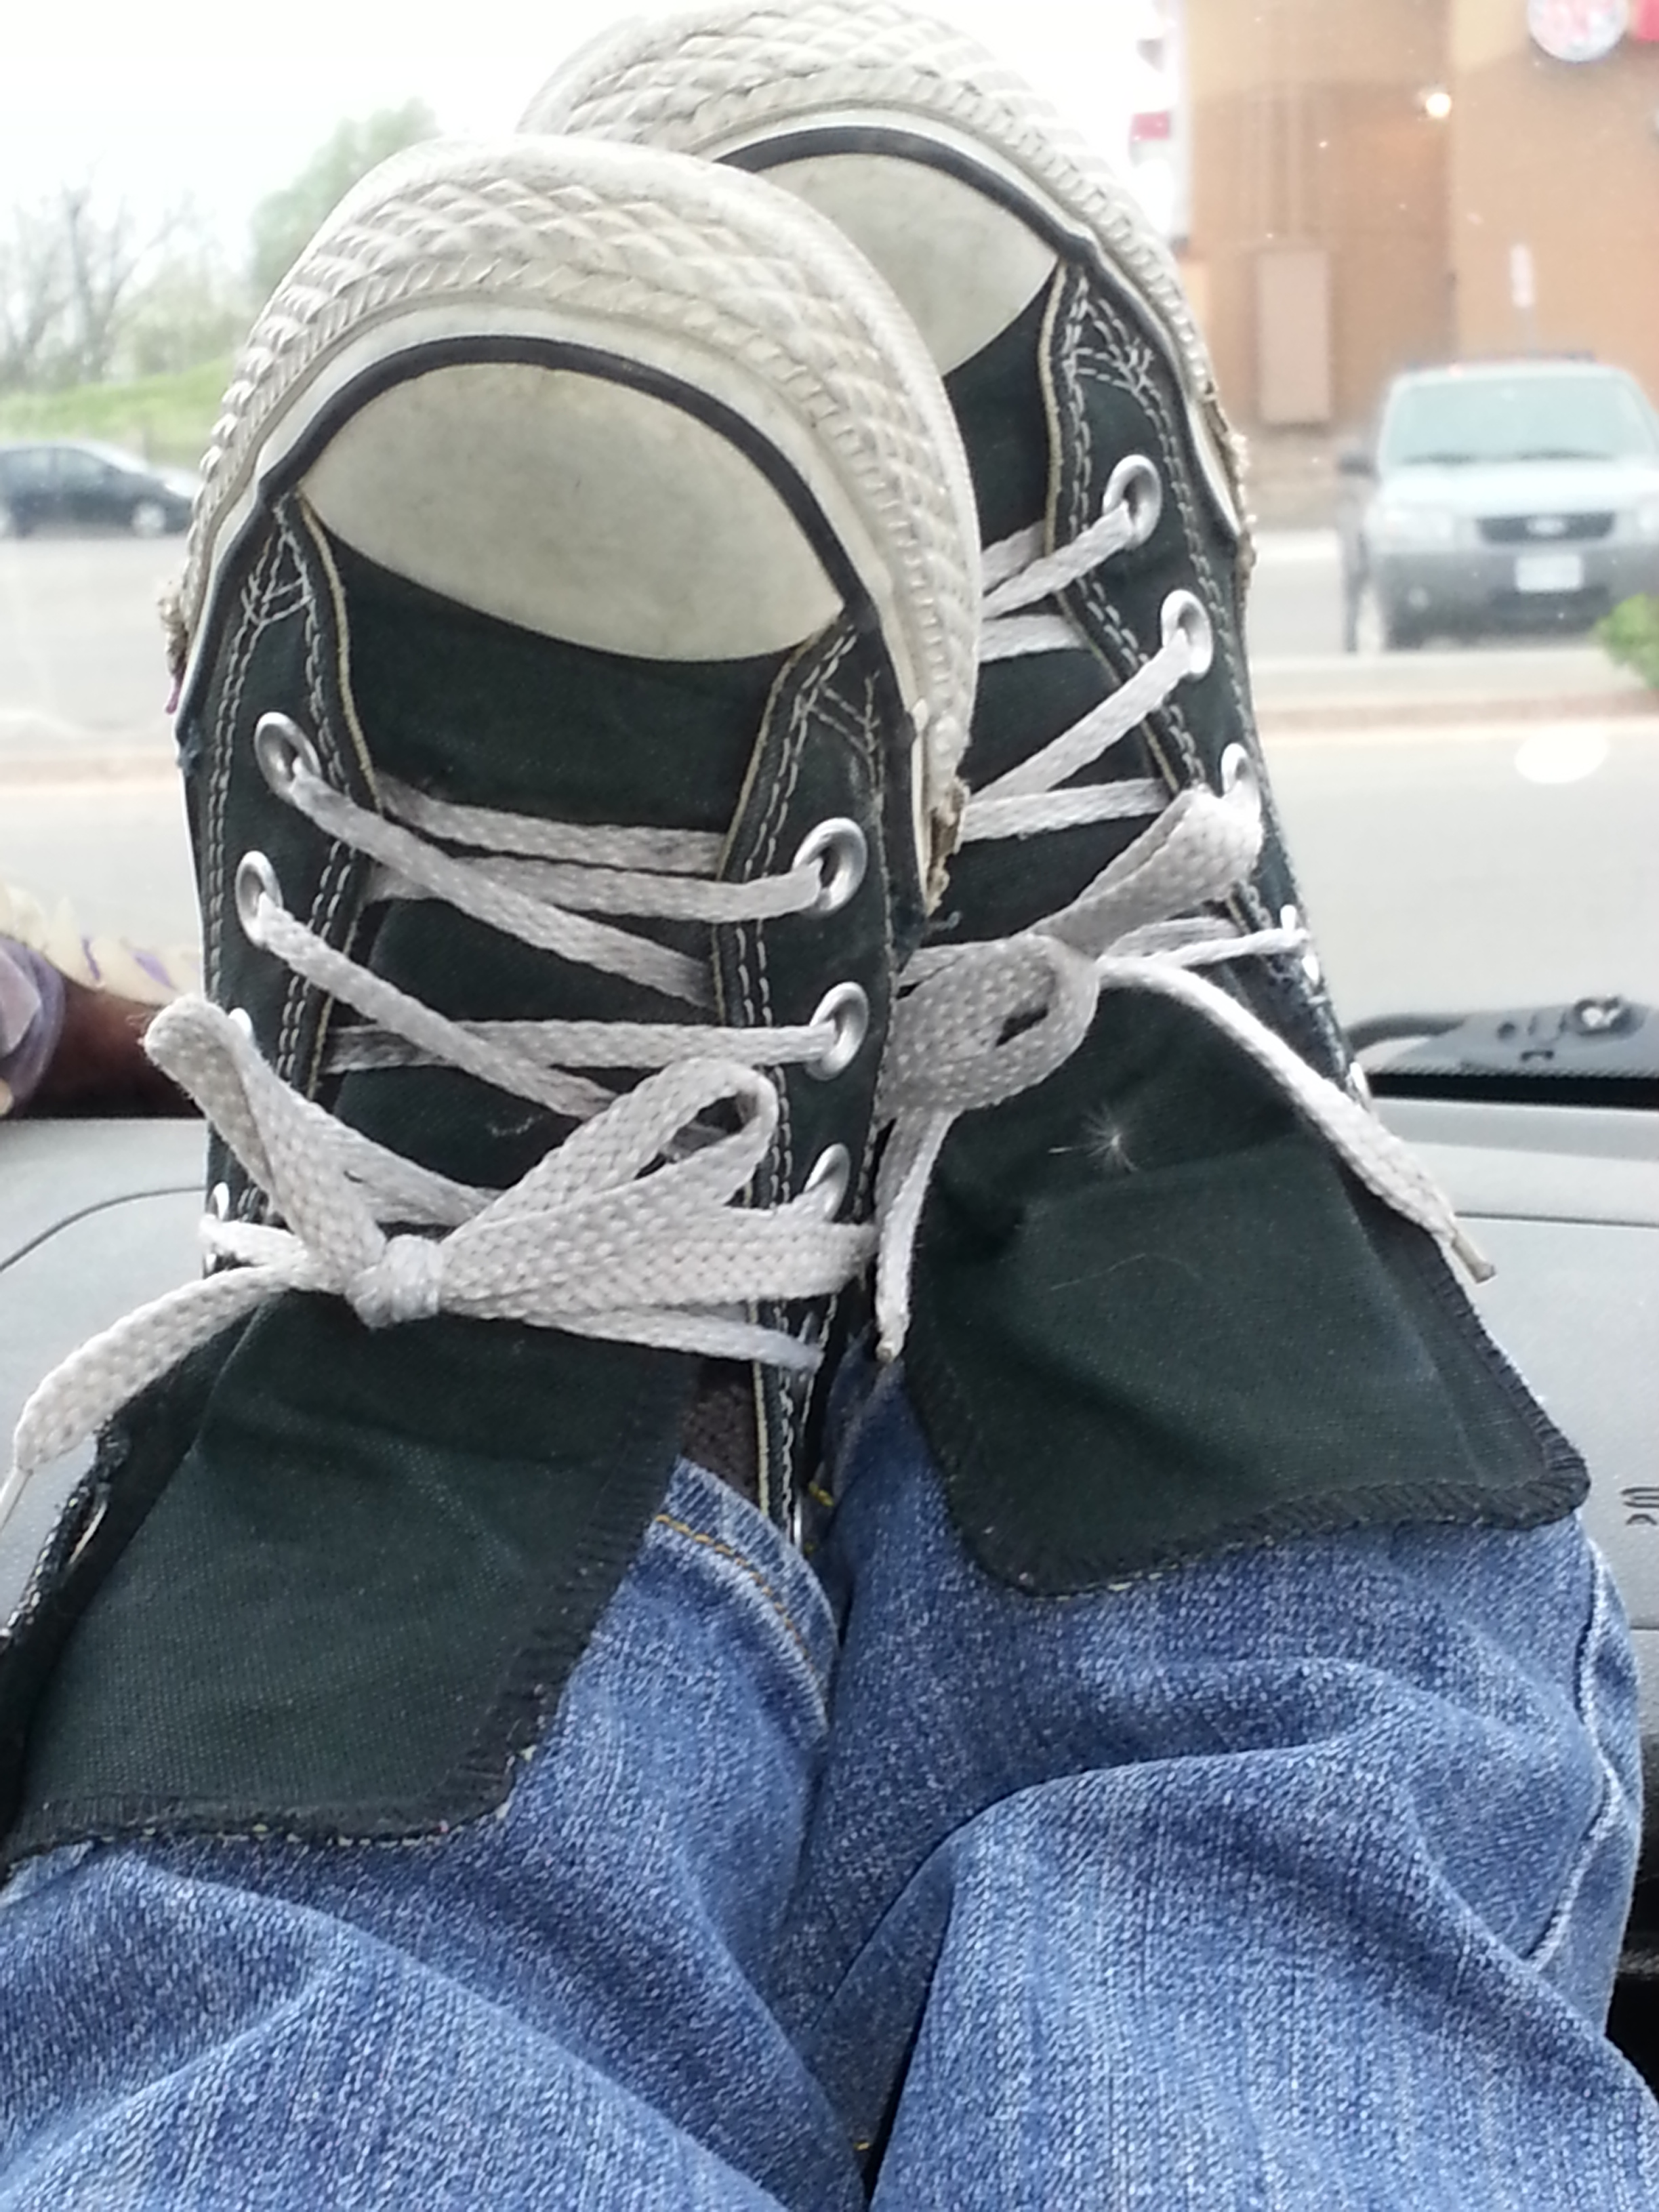 My travelling feet in sneakers.